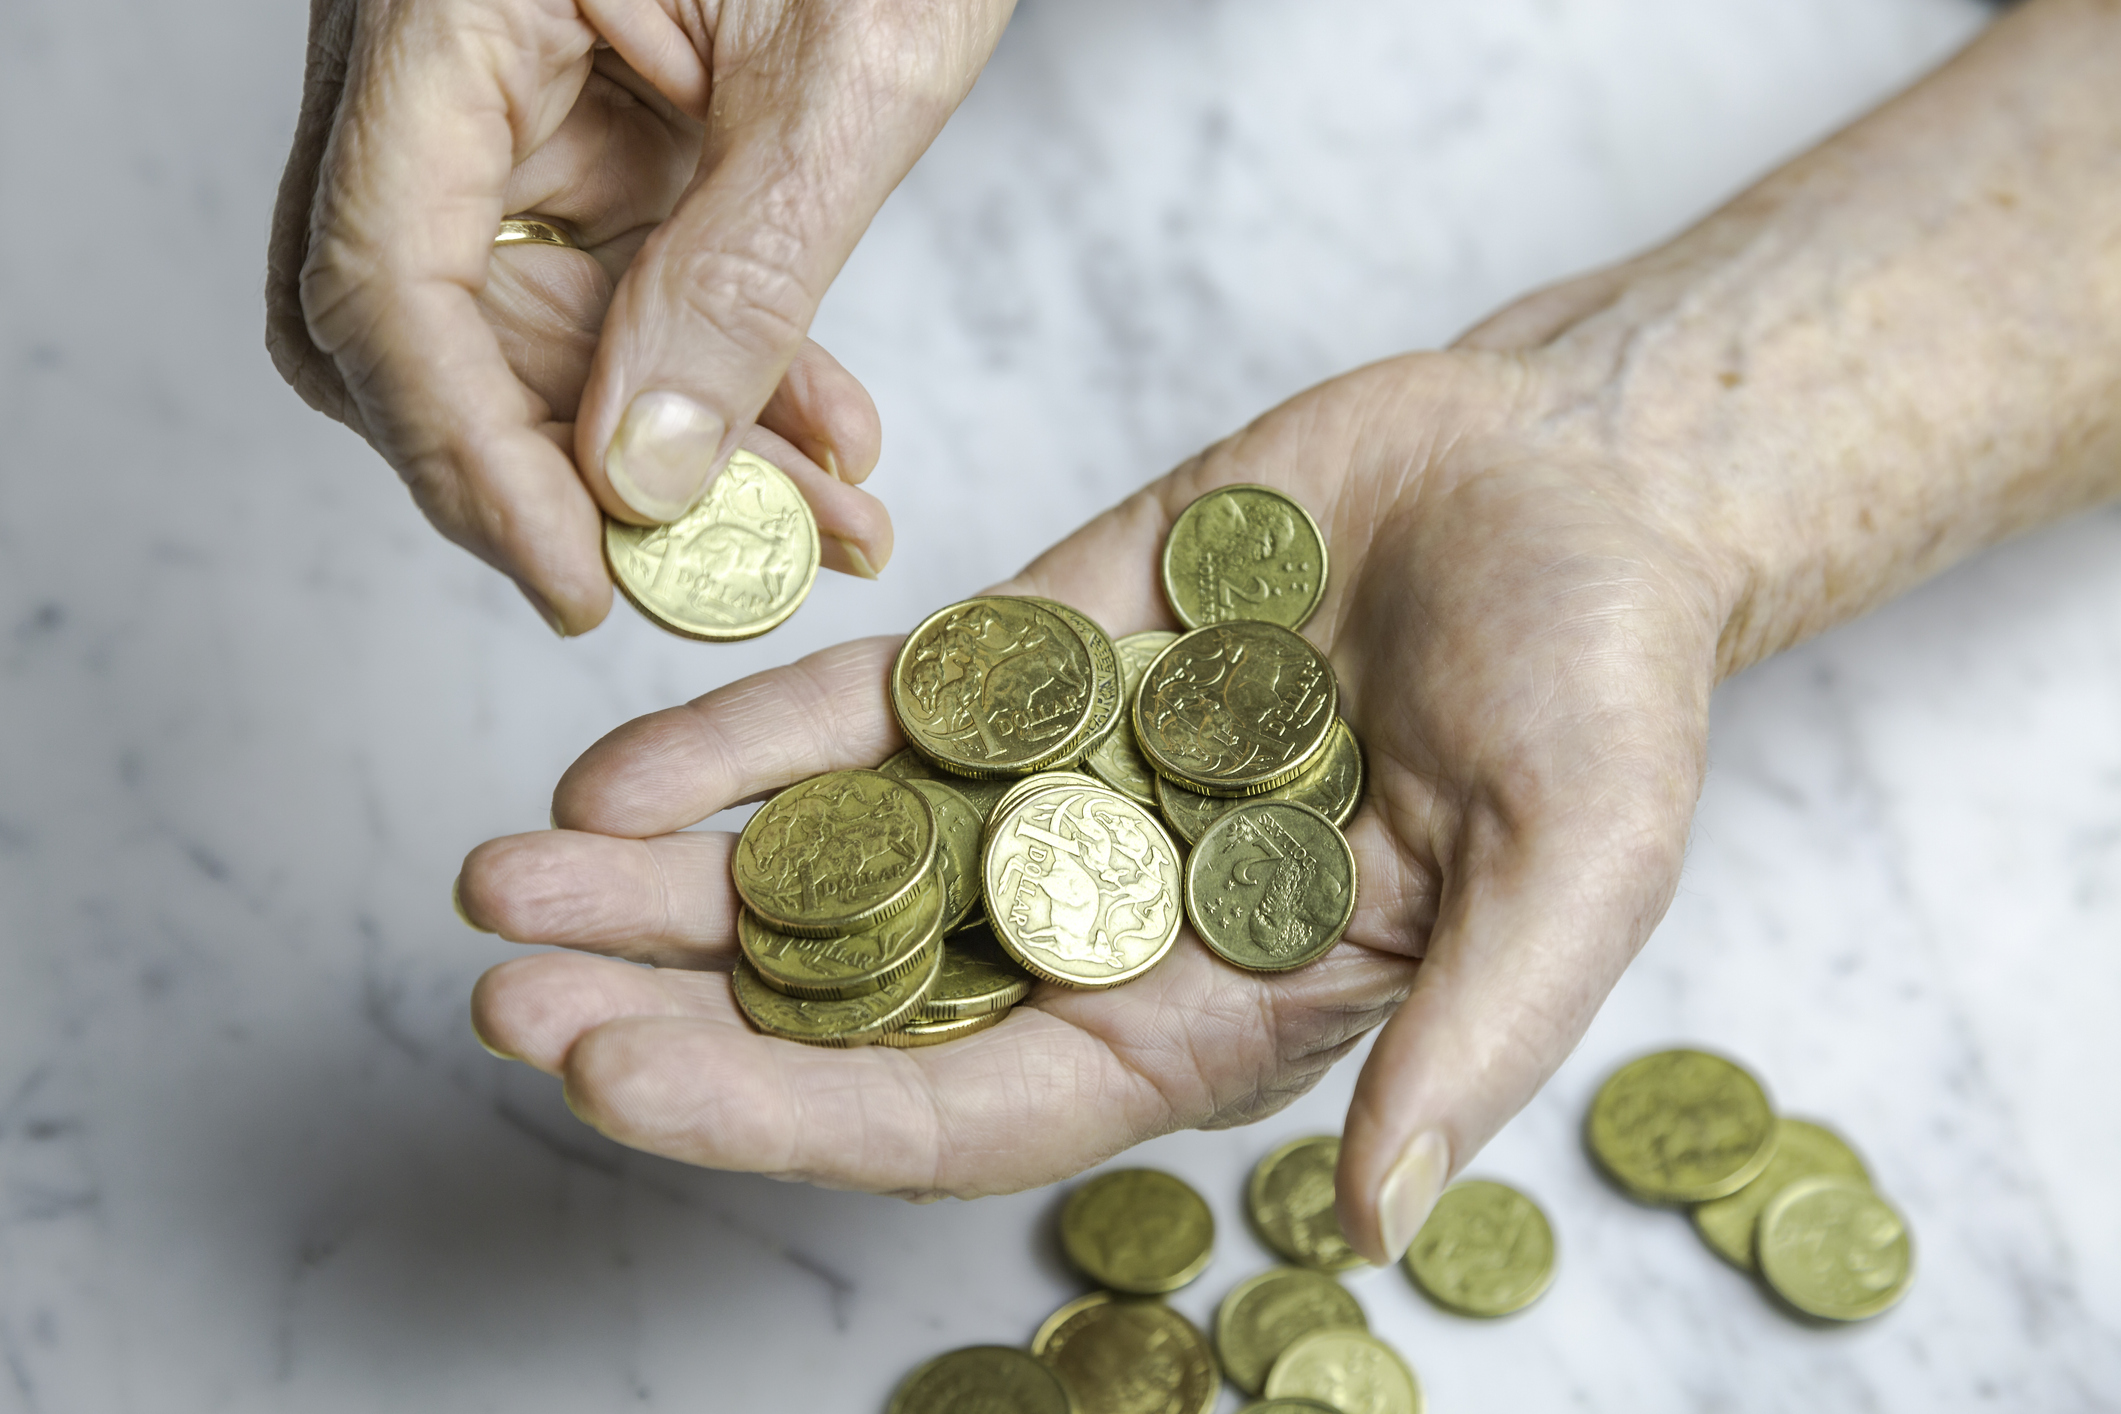 How your loose change can go a long way for struggling Australians